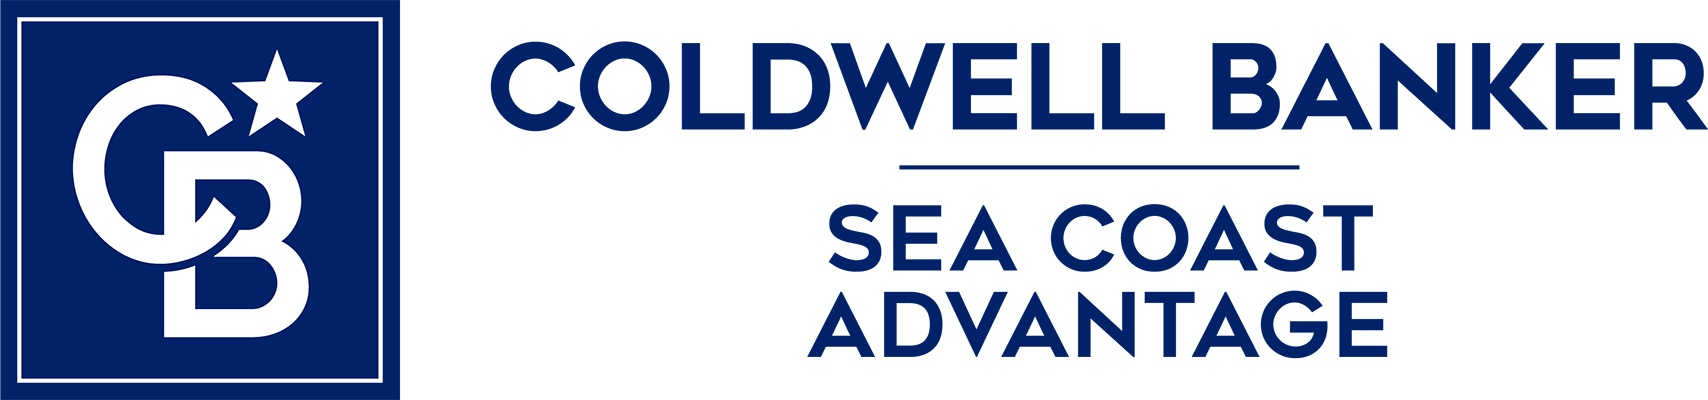 Jim Blair - Coldwell Banker Sea Coast Advantage Realty Logo